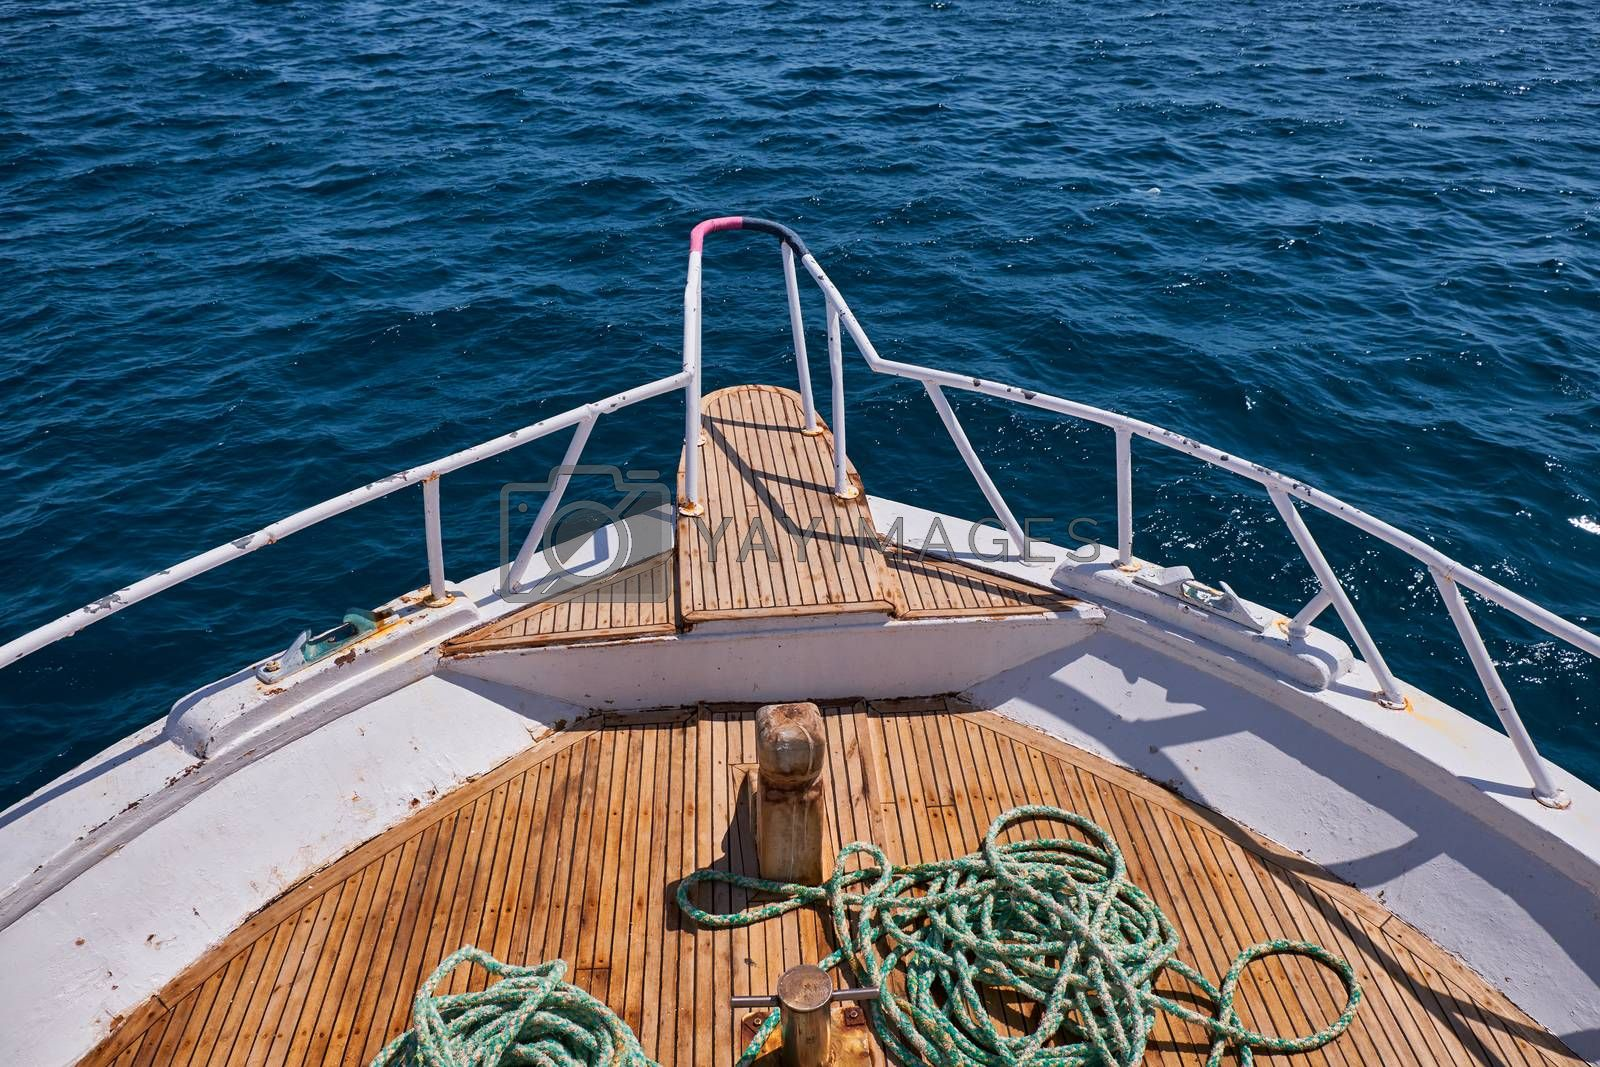 Bow of a boat with blue ocean, sailing image stock